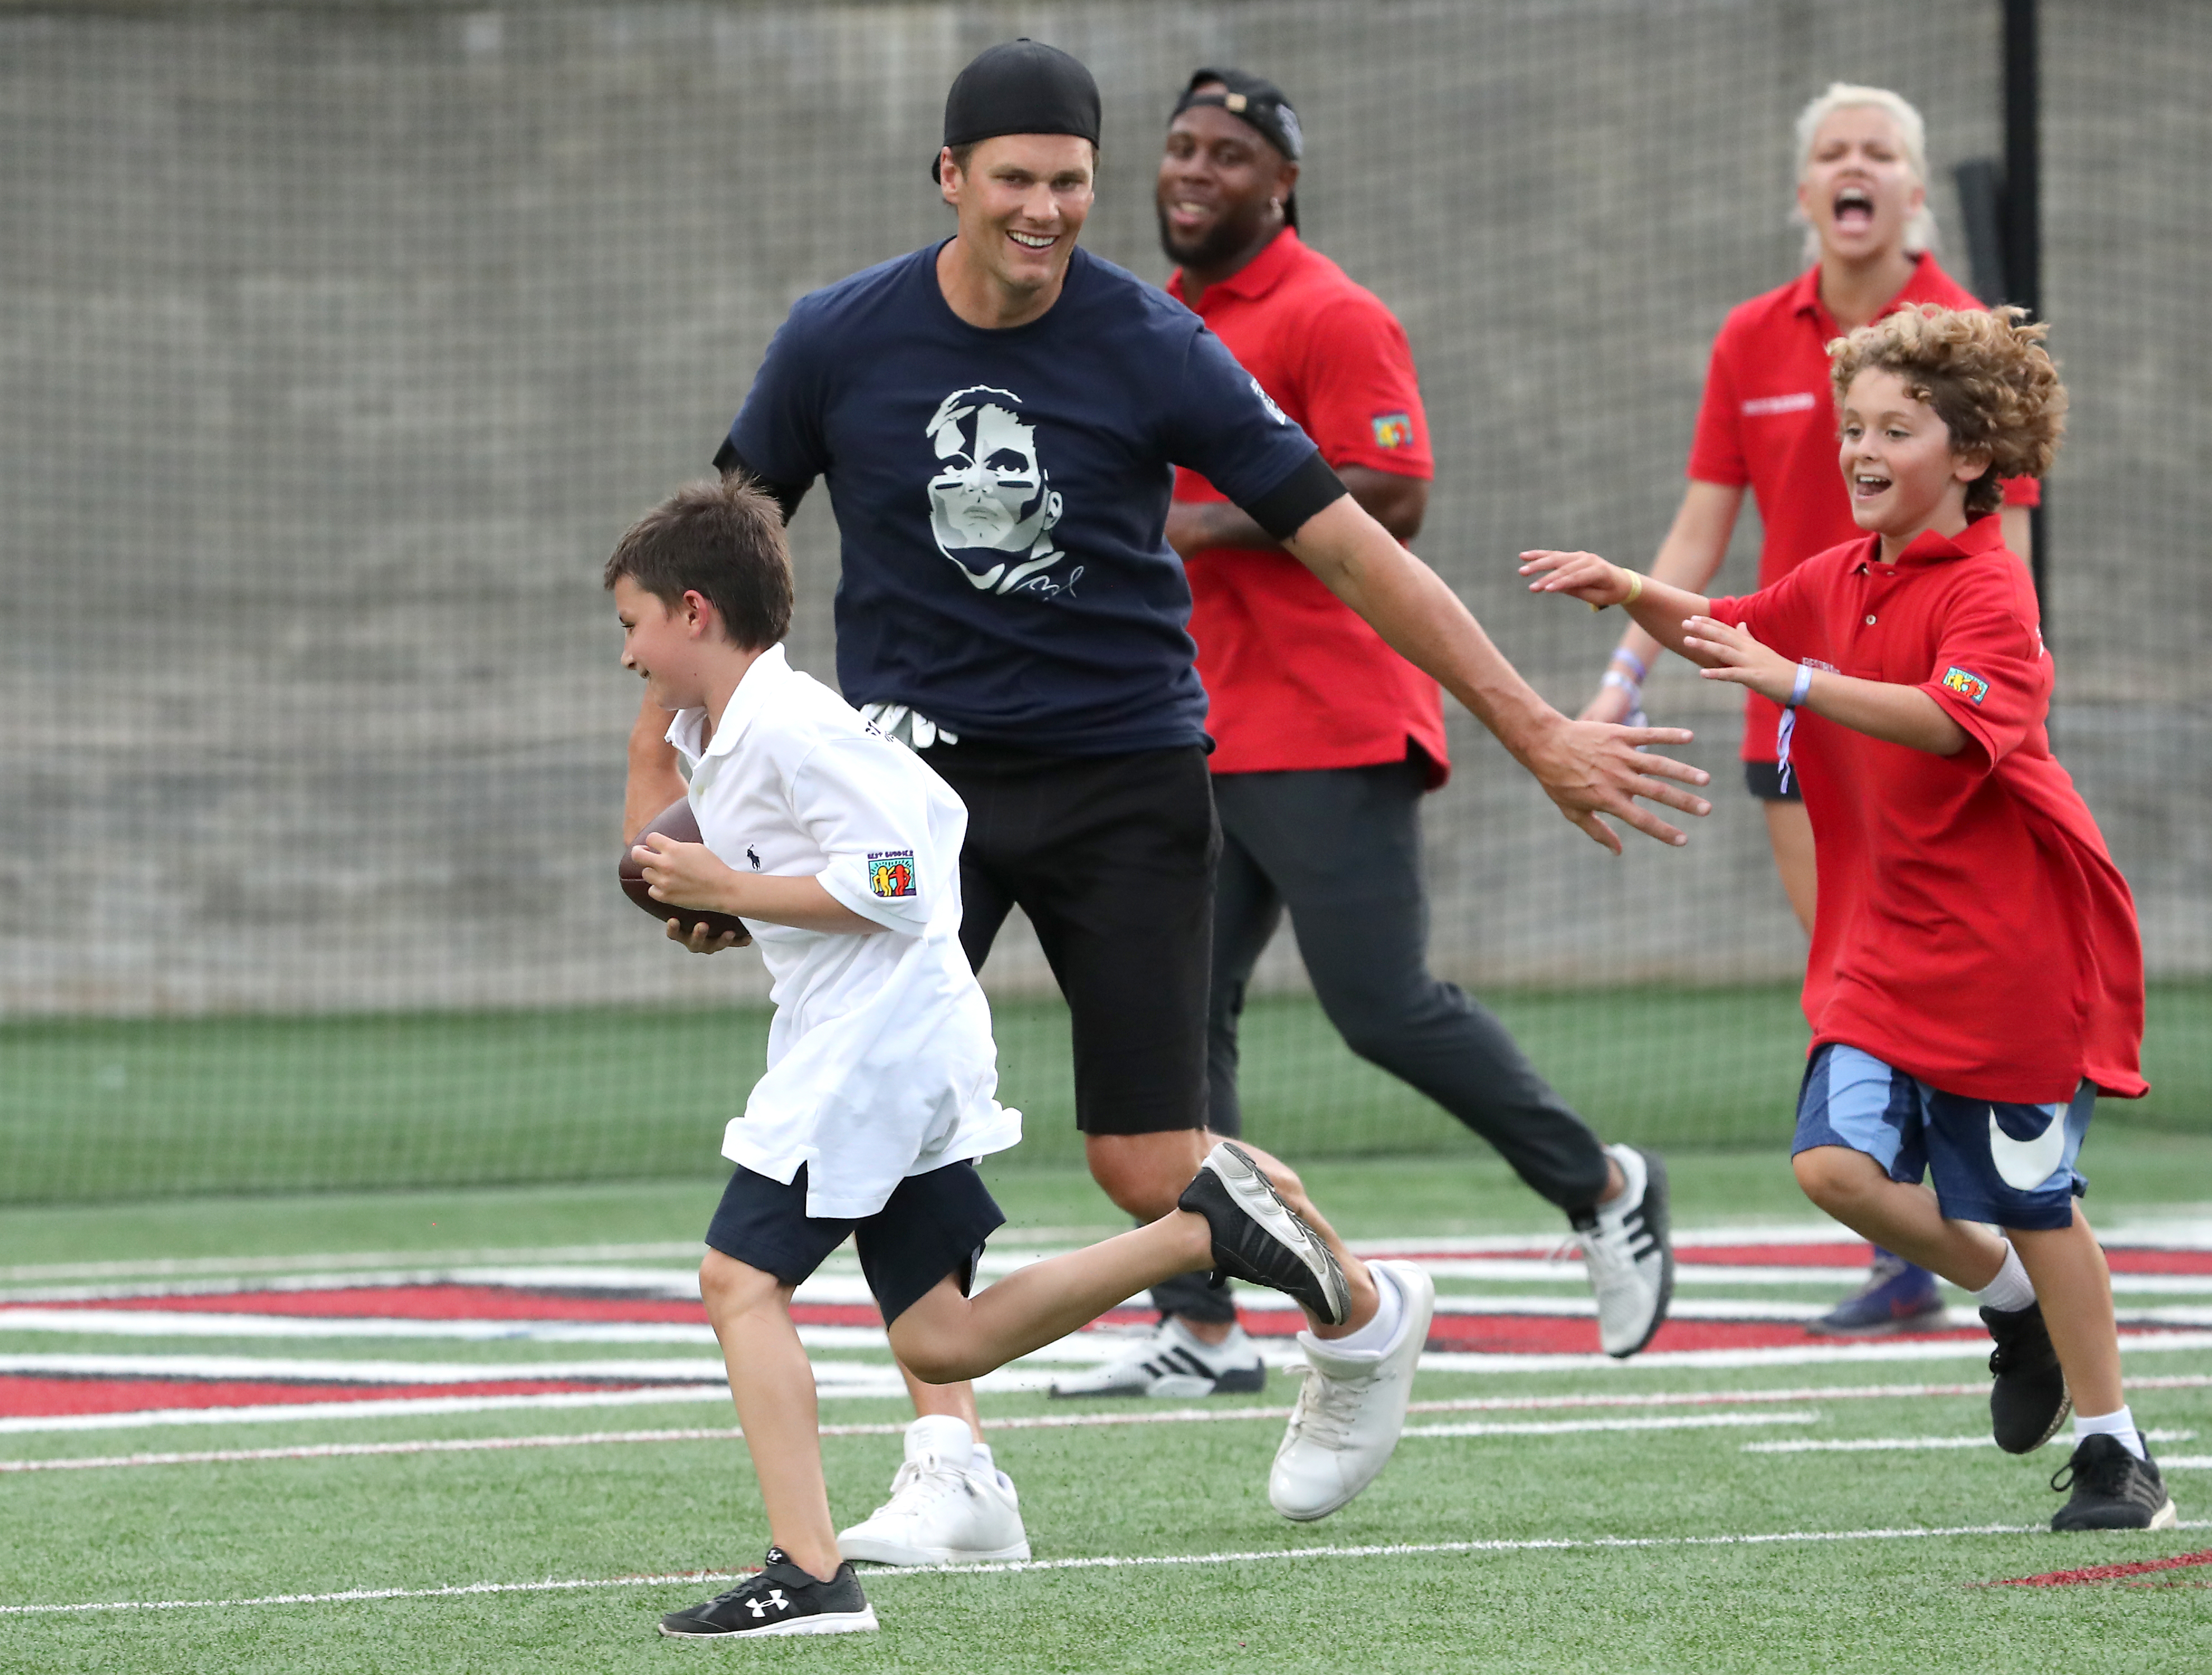 """BOSTON, MA - JUNE 1: New England Patriots quarterback Tom Brady blocks for his son, Benjamin as he scores a touchdown with pressure from John """"Joseph"""" Sargent Shriver during the Best Buddies Football Challenge with at Harvard Stadium in Boston on June 1, 2018. (Photo by Matthew J. Lee/The Boston Globe via Getty Images)"""